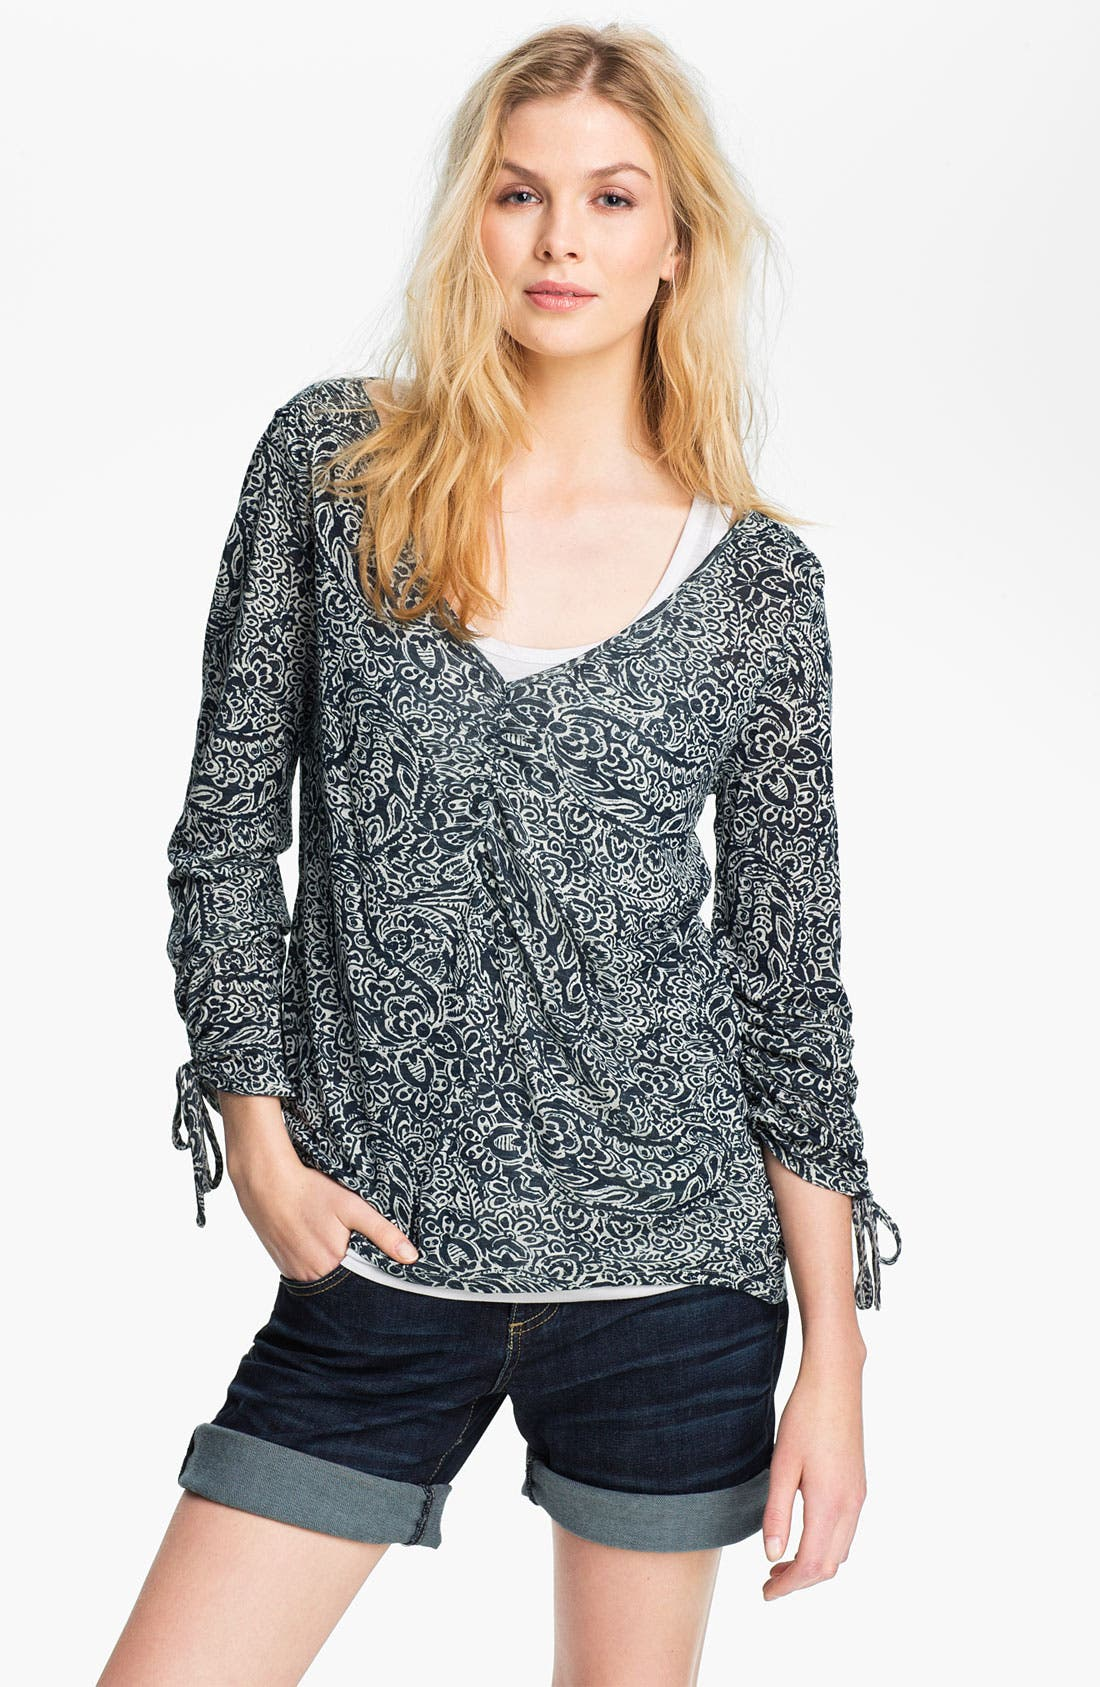 Alternate Image 1 Selected - Lucky Brand 'Mika' Paisley Top